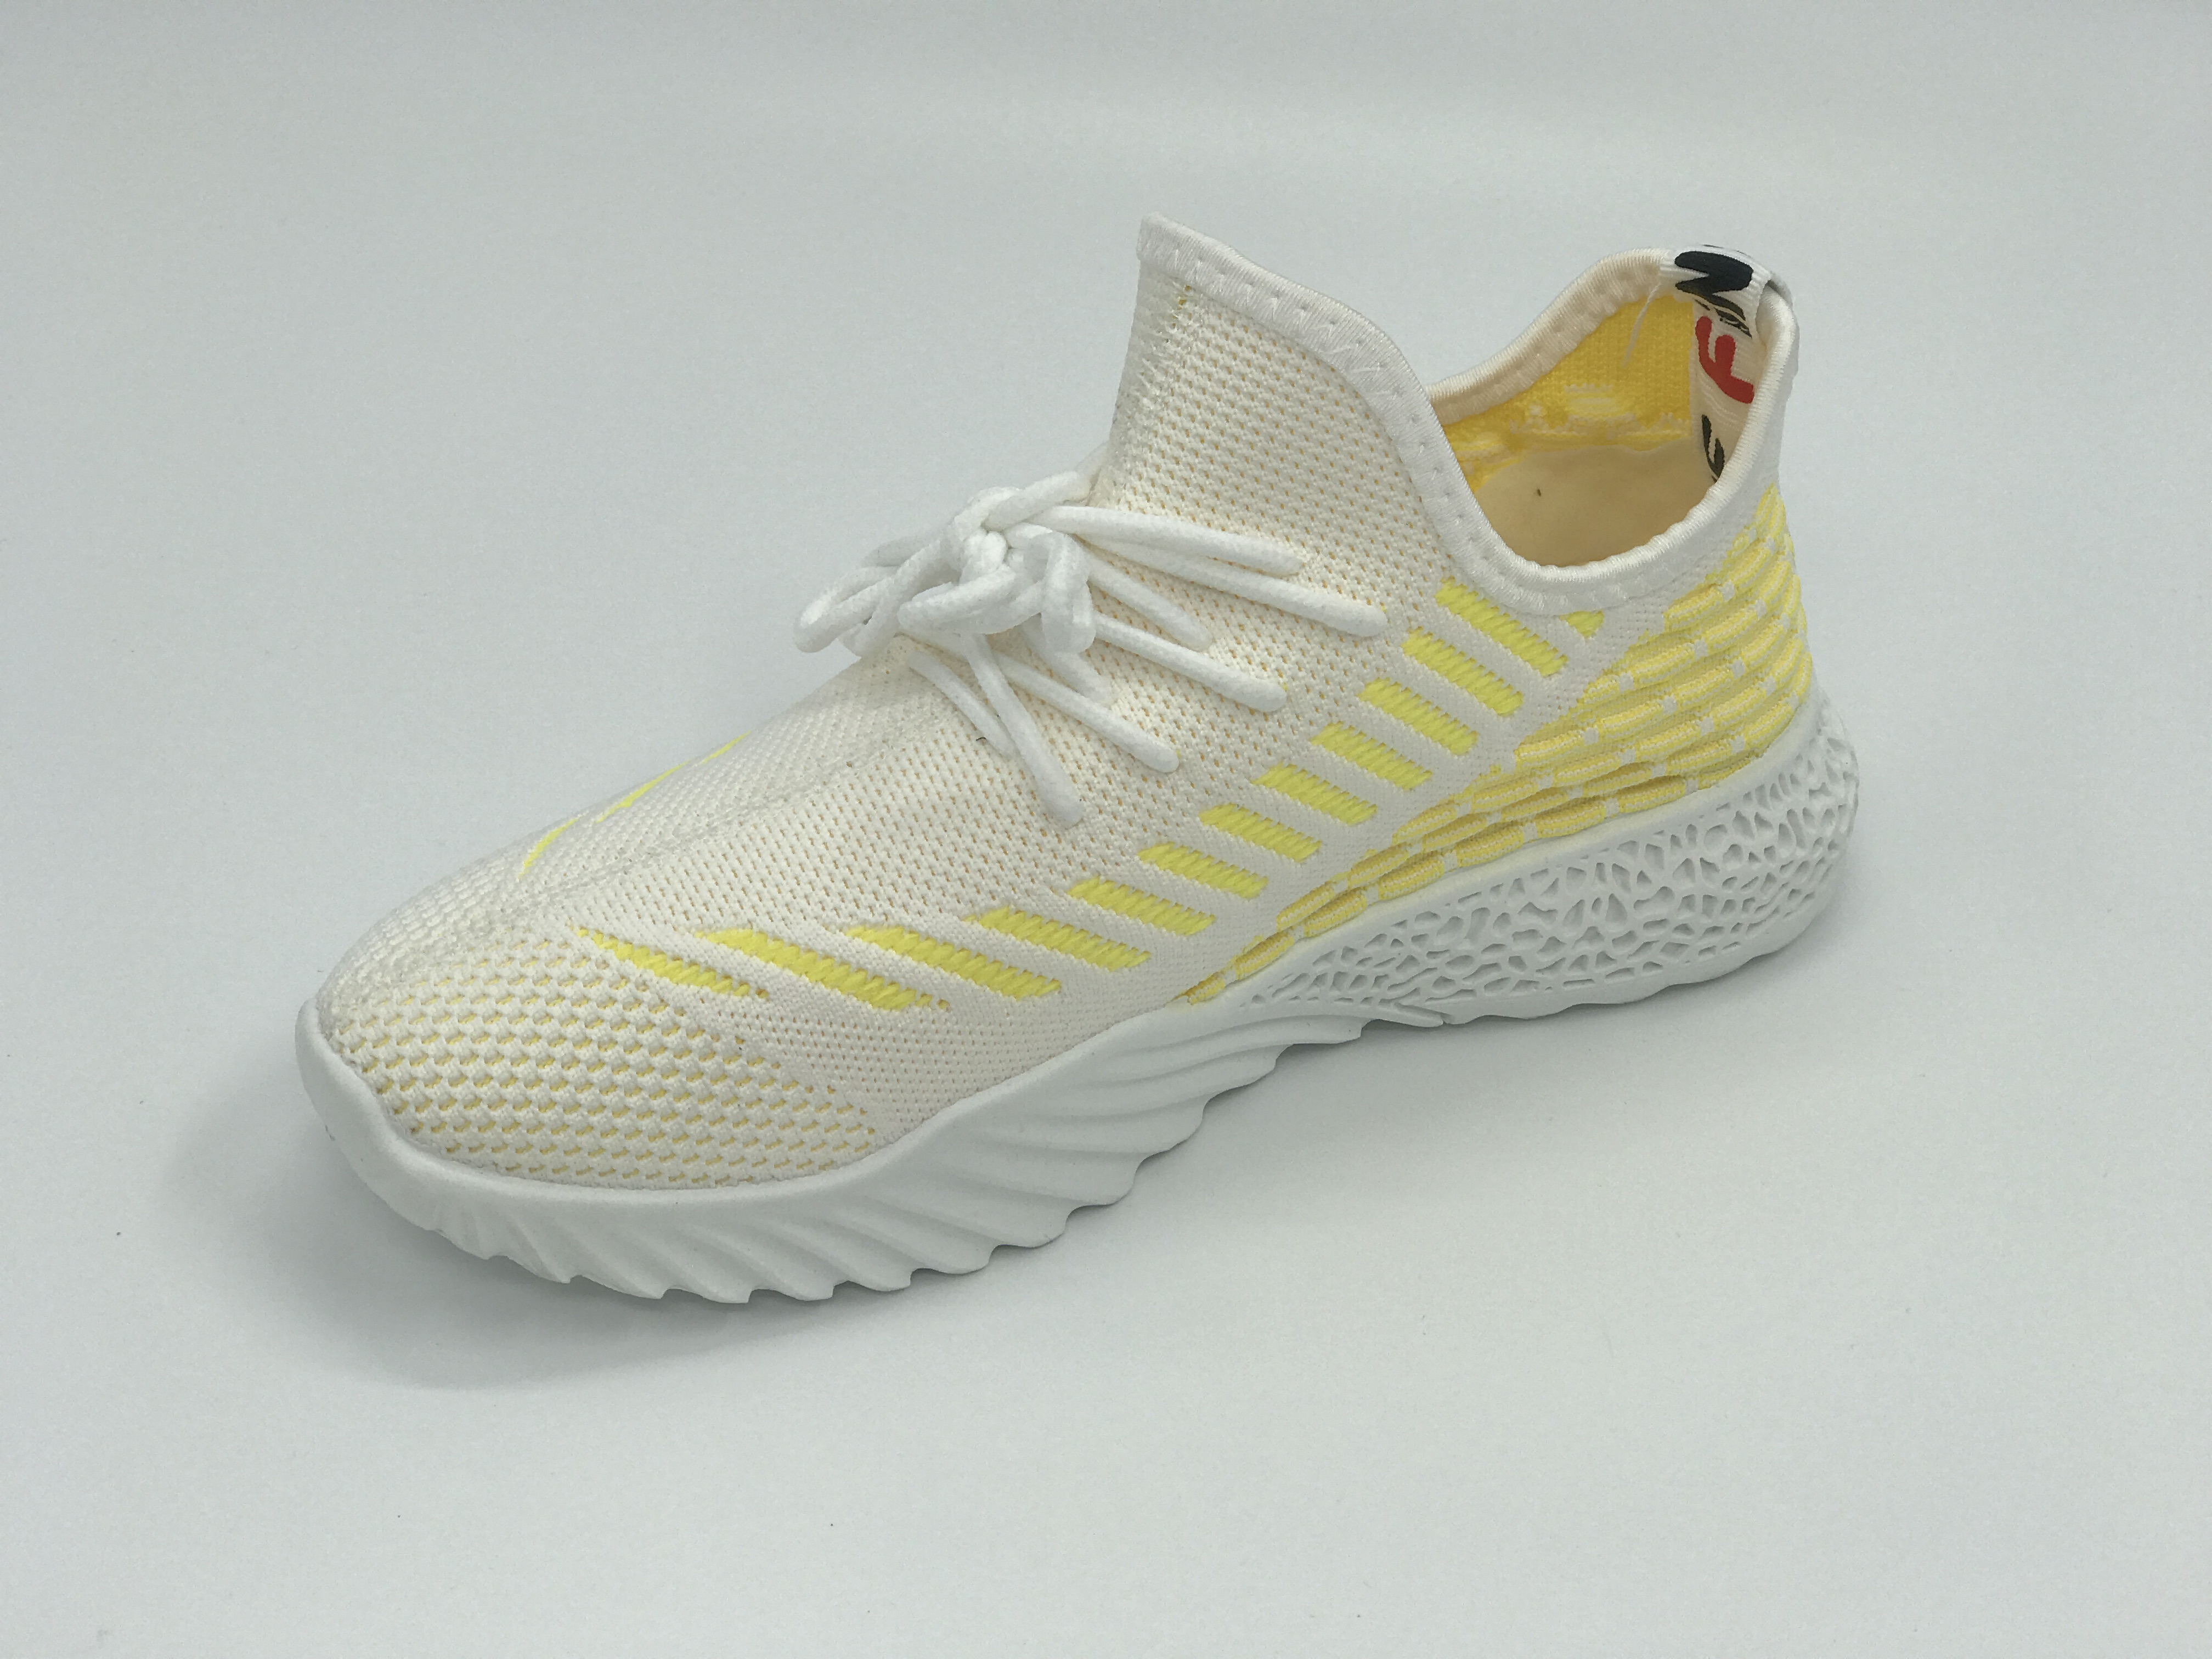 Men's fashion Flying weaving leather running sports shoes, wear-resistant casual sports shoes for men With luminous